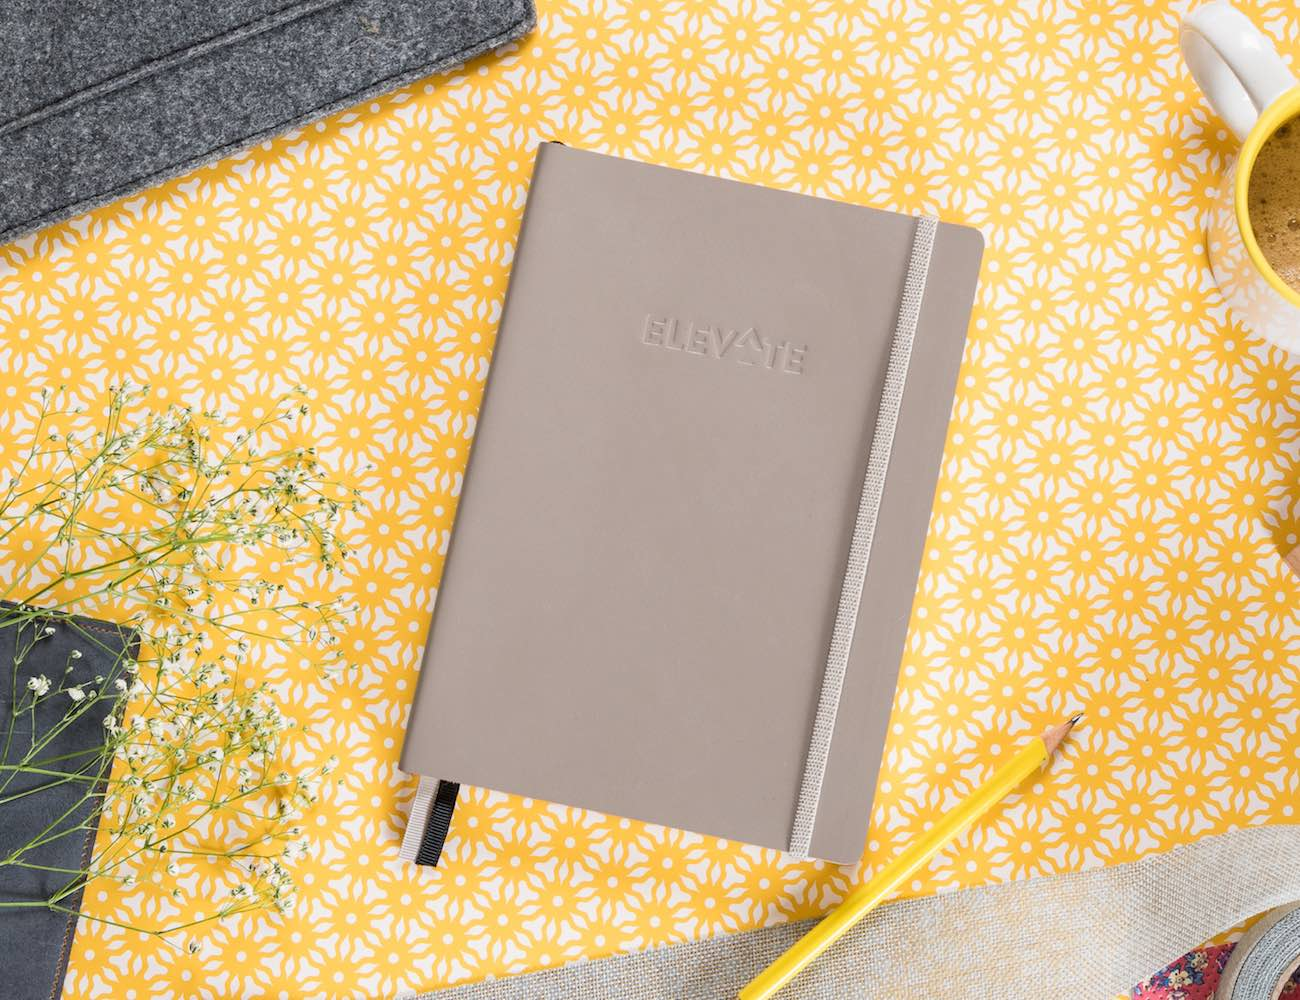 Elevate 2018 Proactive Everyday Planner